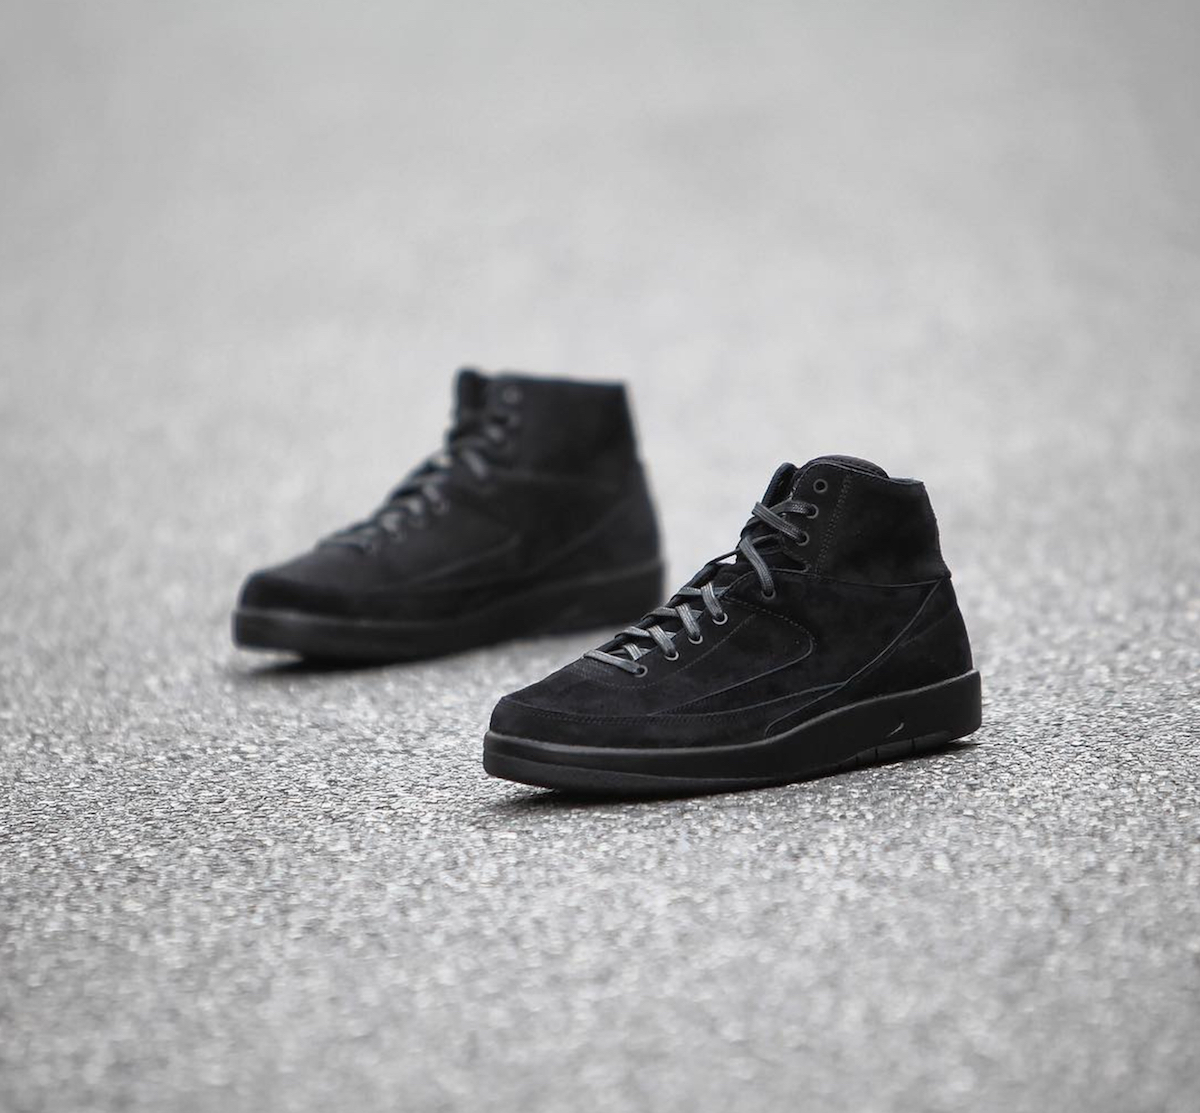 wholesale dealer cda78 08878 Up Close and Personal with the Air Jordan II Decon - WearTesters